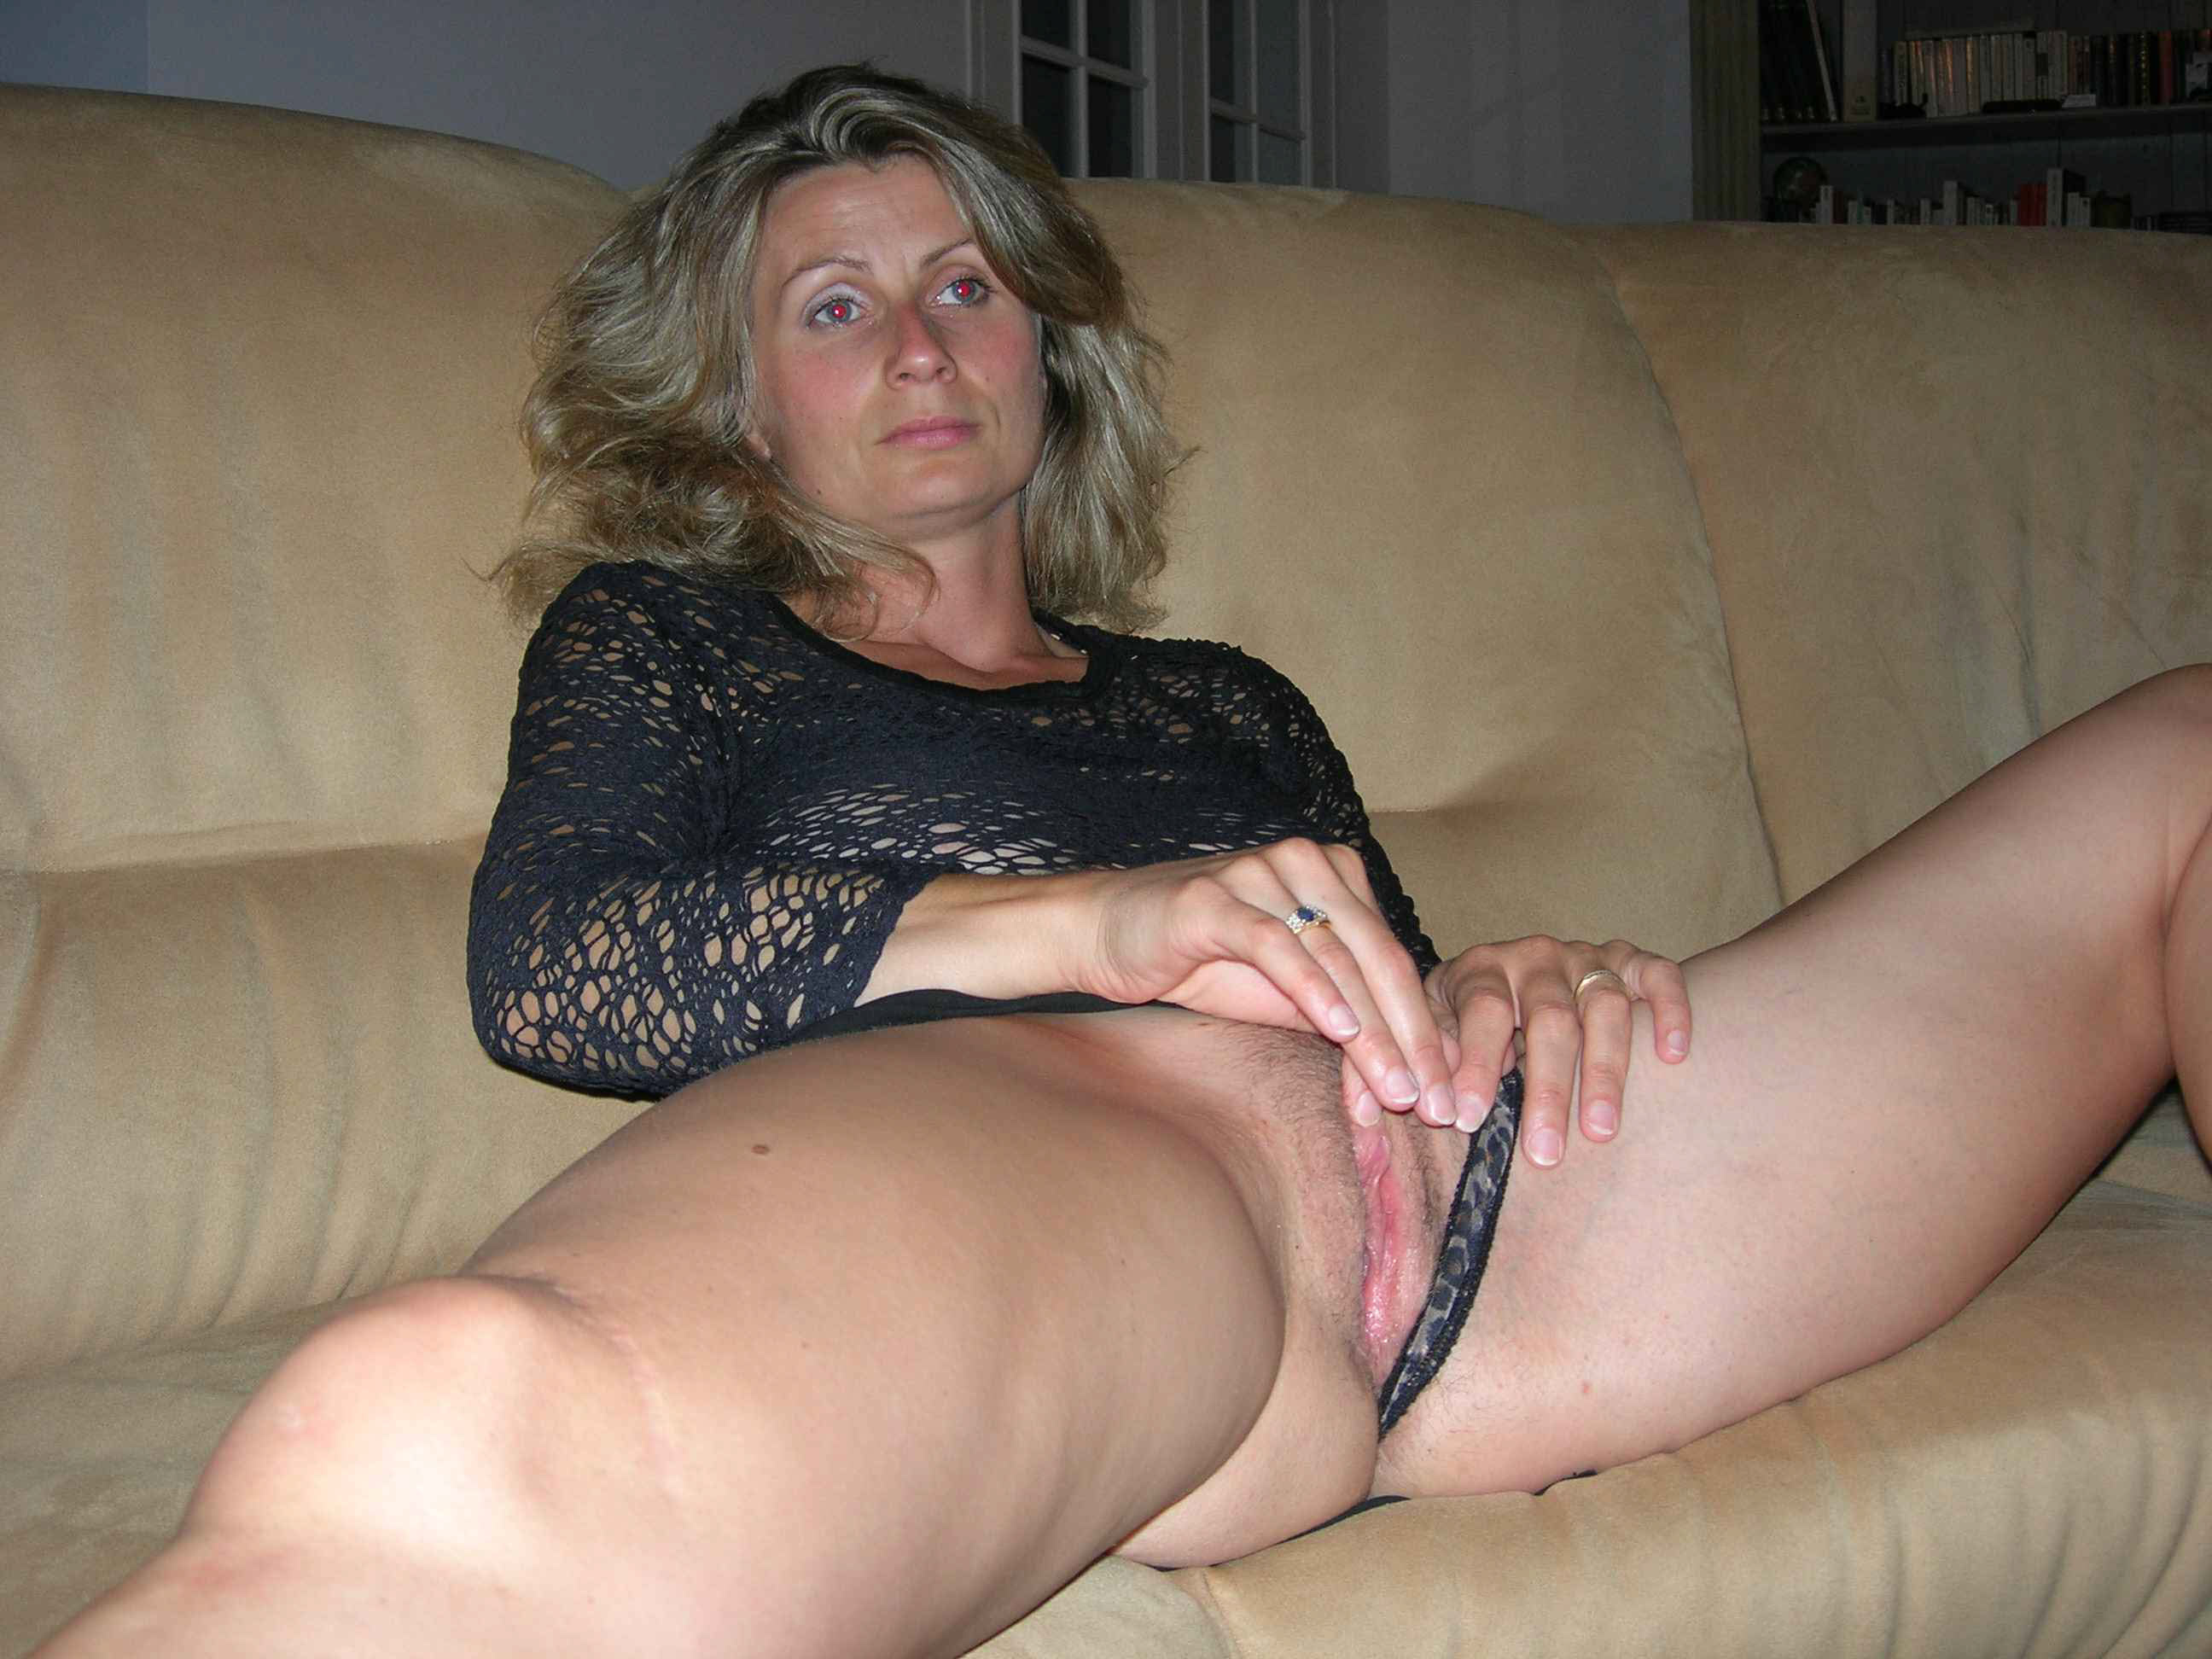 blow jobs hot guys with hot girls